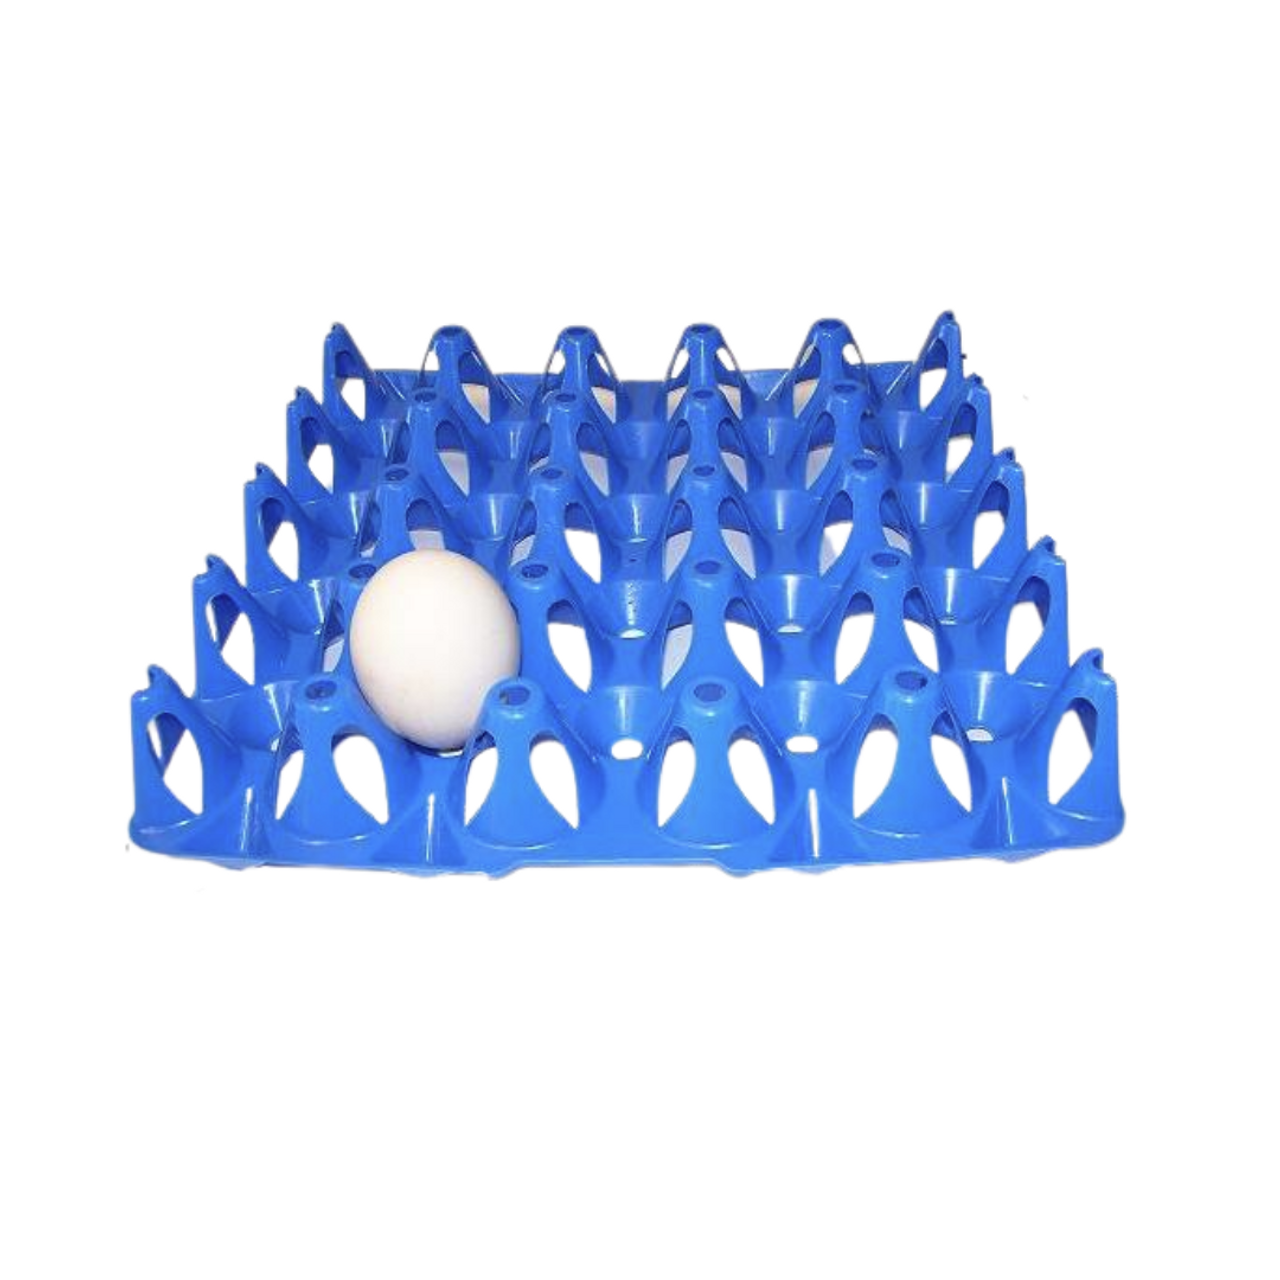 Turkey / Duck Vented Plastic 20-Egg Tray in blue.